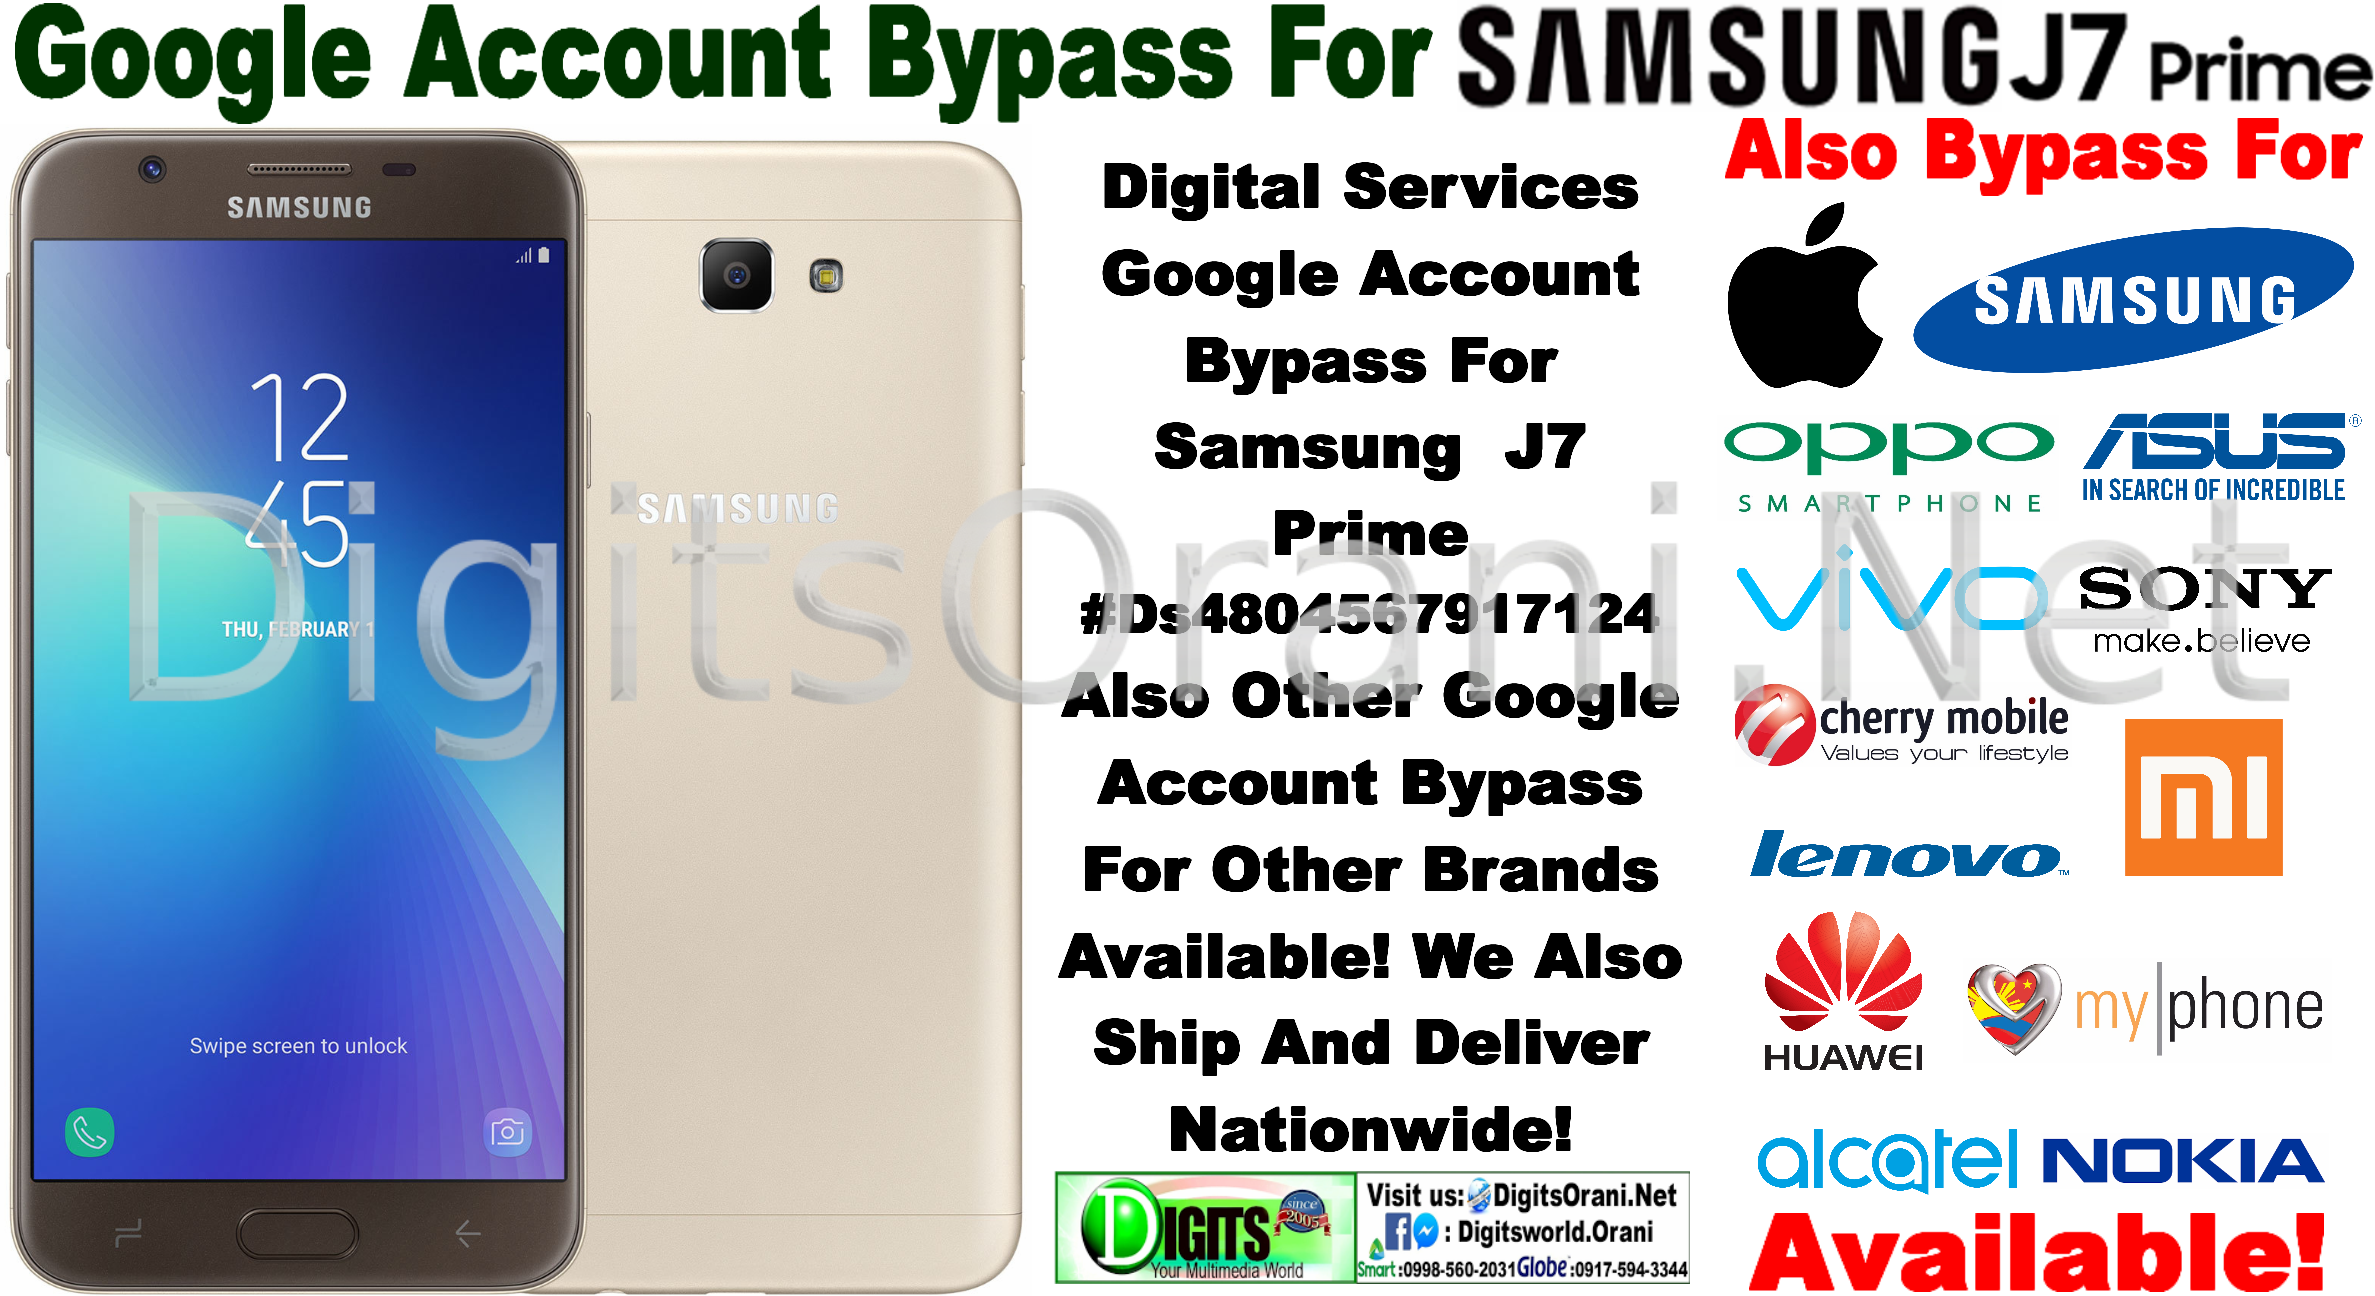 Digital Services Google Account Bypass For Samsung J7 Prime #Ds4804567917124